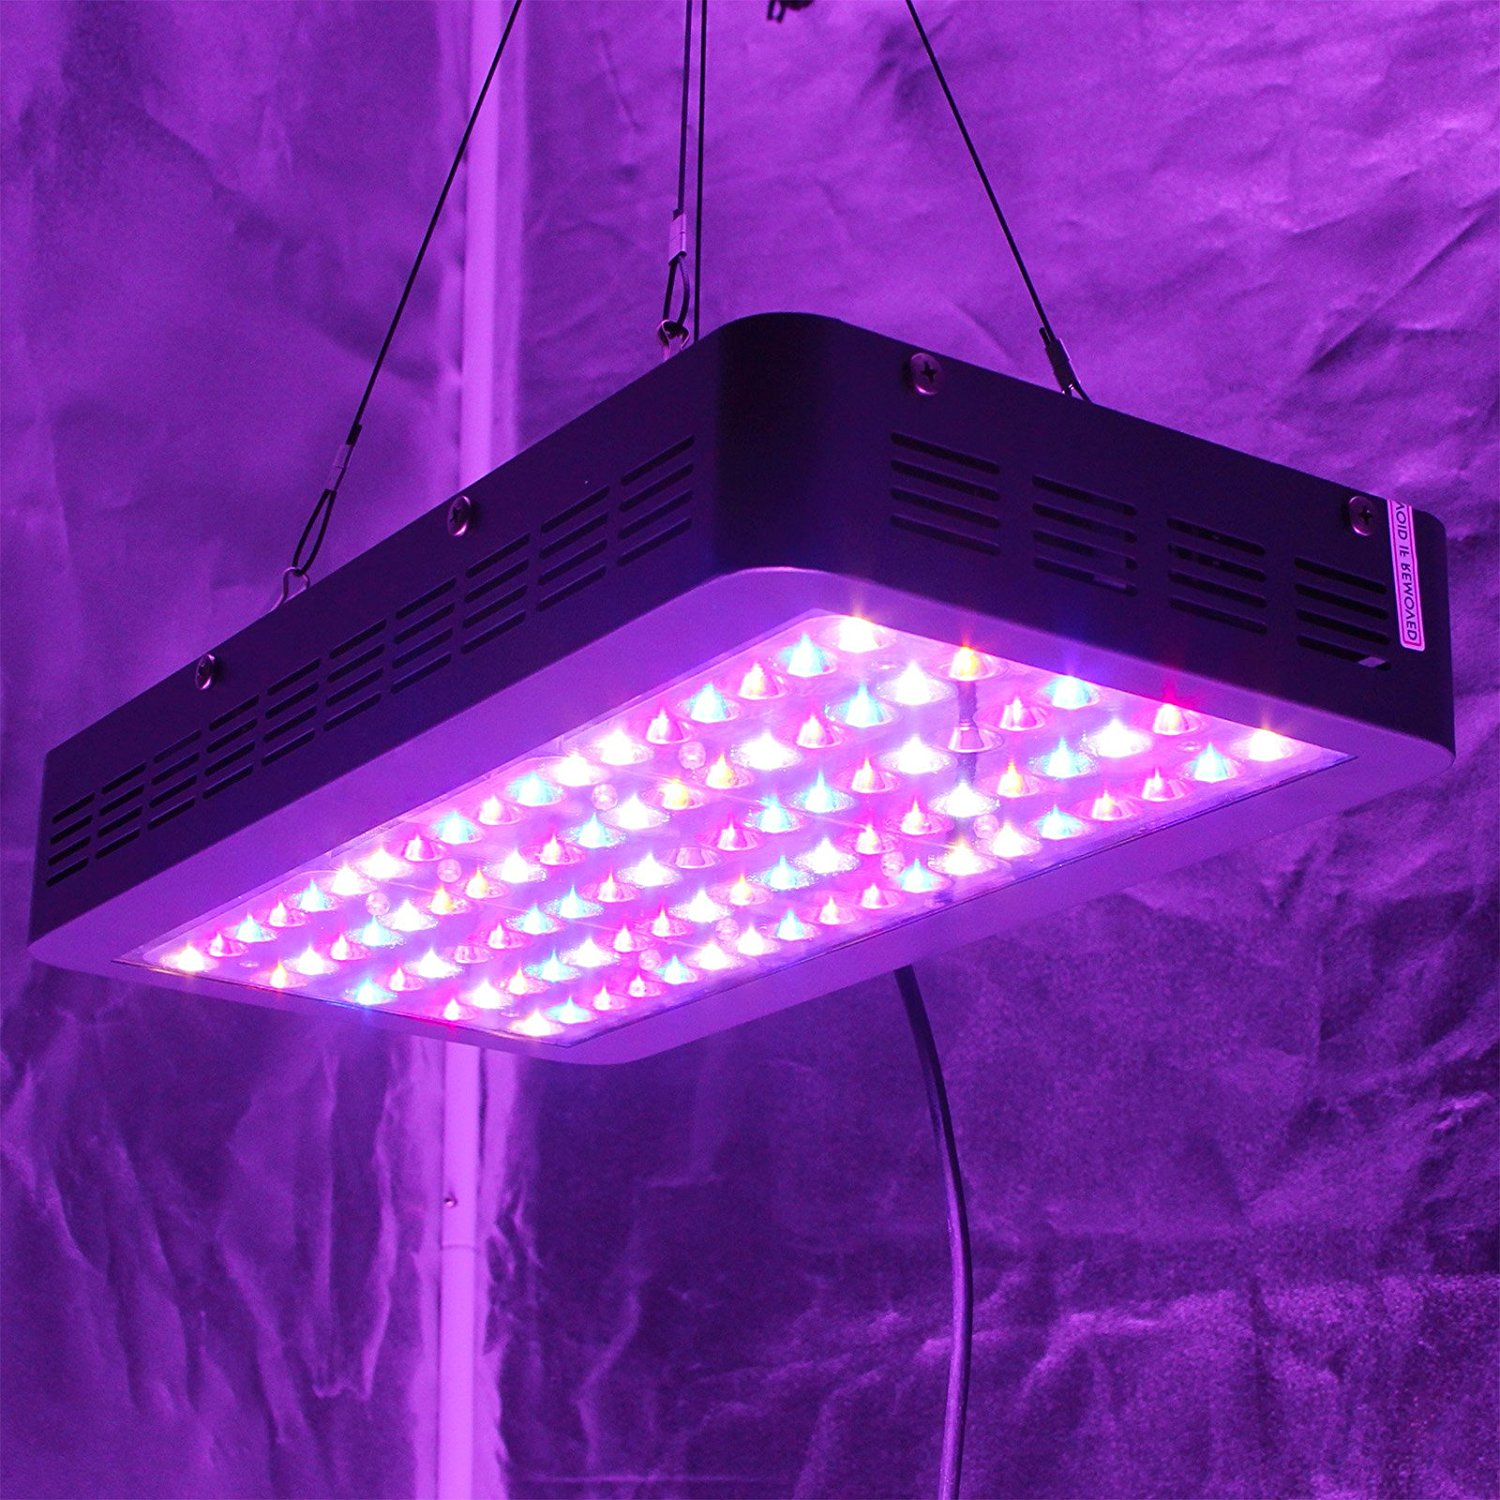 Led Lights In Series: ViparSpectra Reflector-Series 450W LED Grow Light